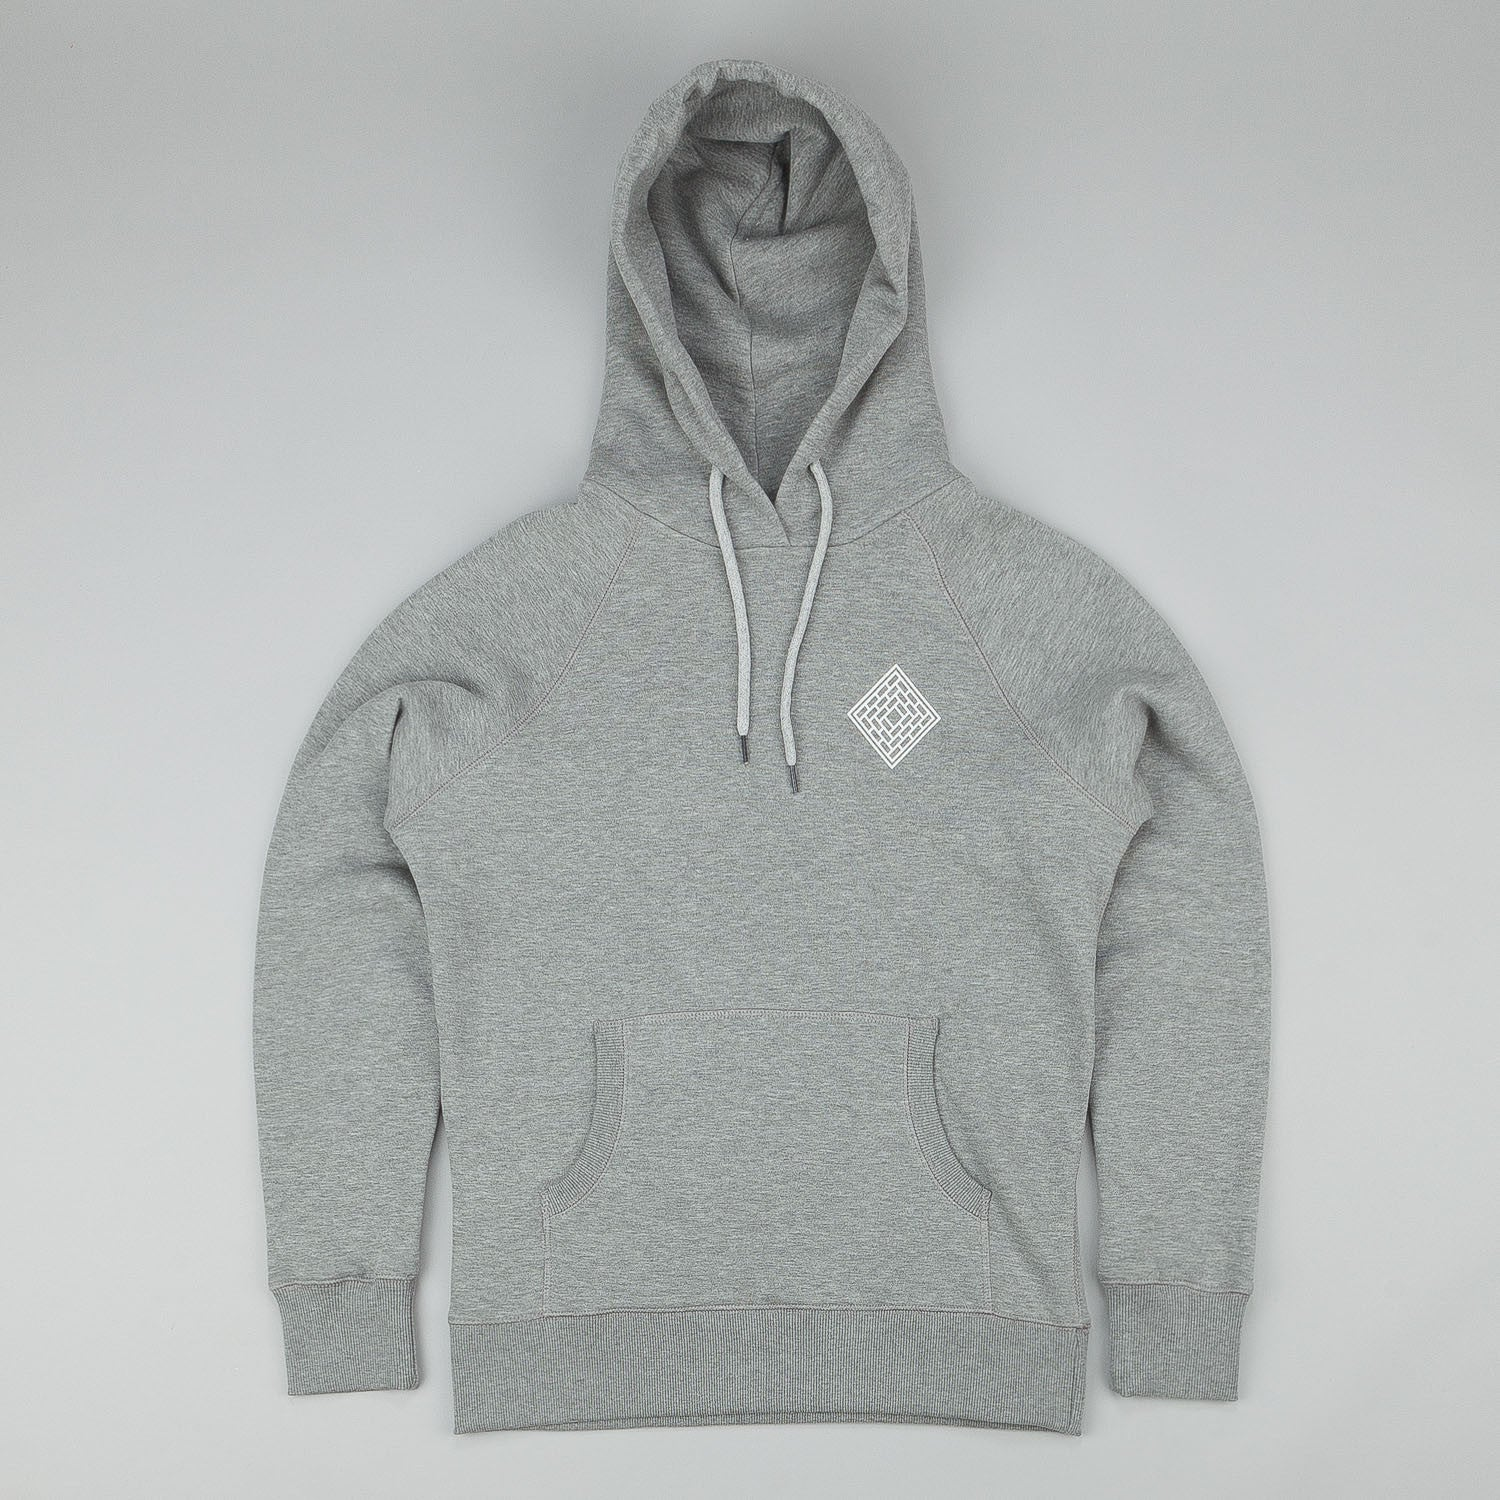 The National Skateboard Co Mono Logo Hooded Sweatshirt